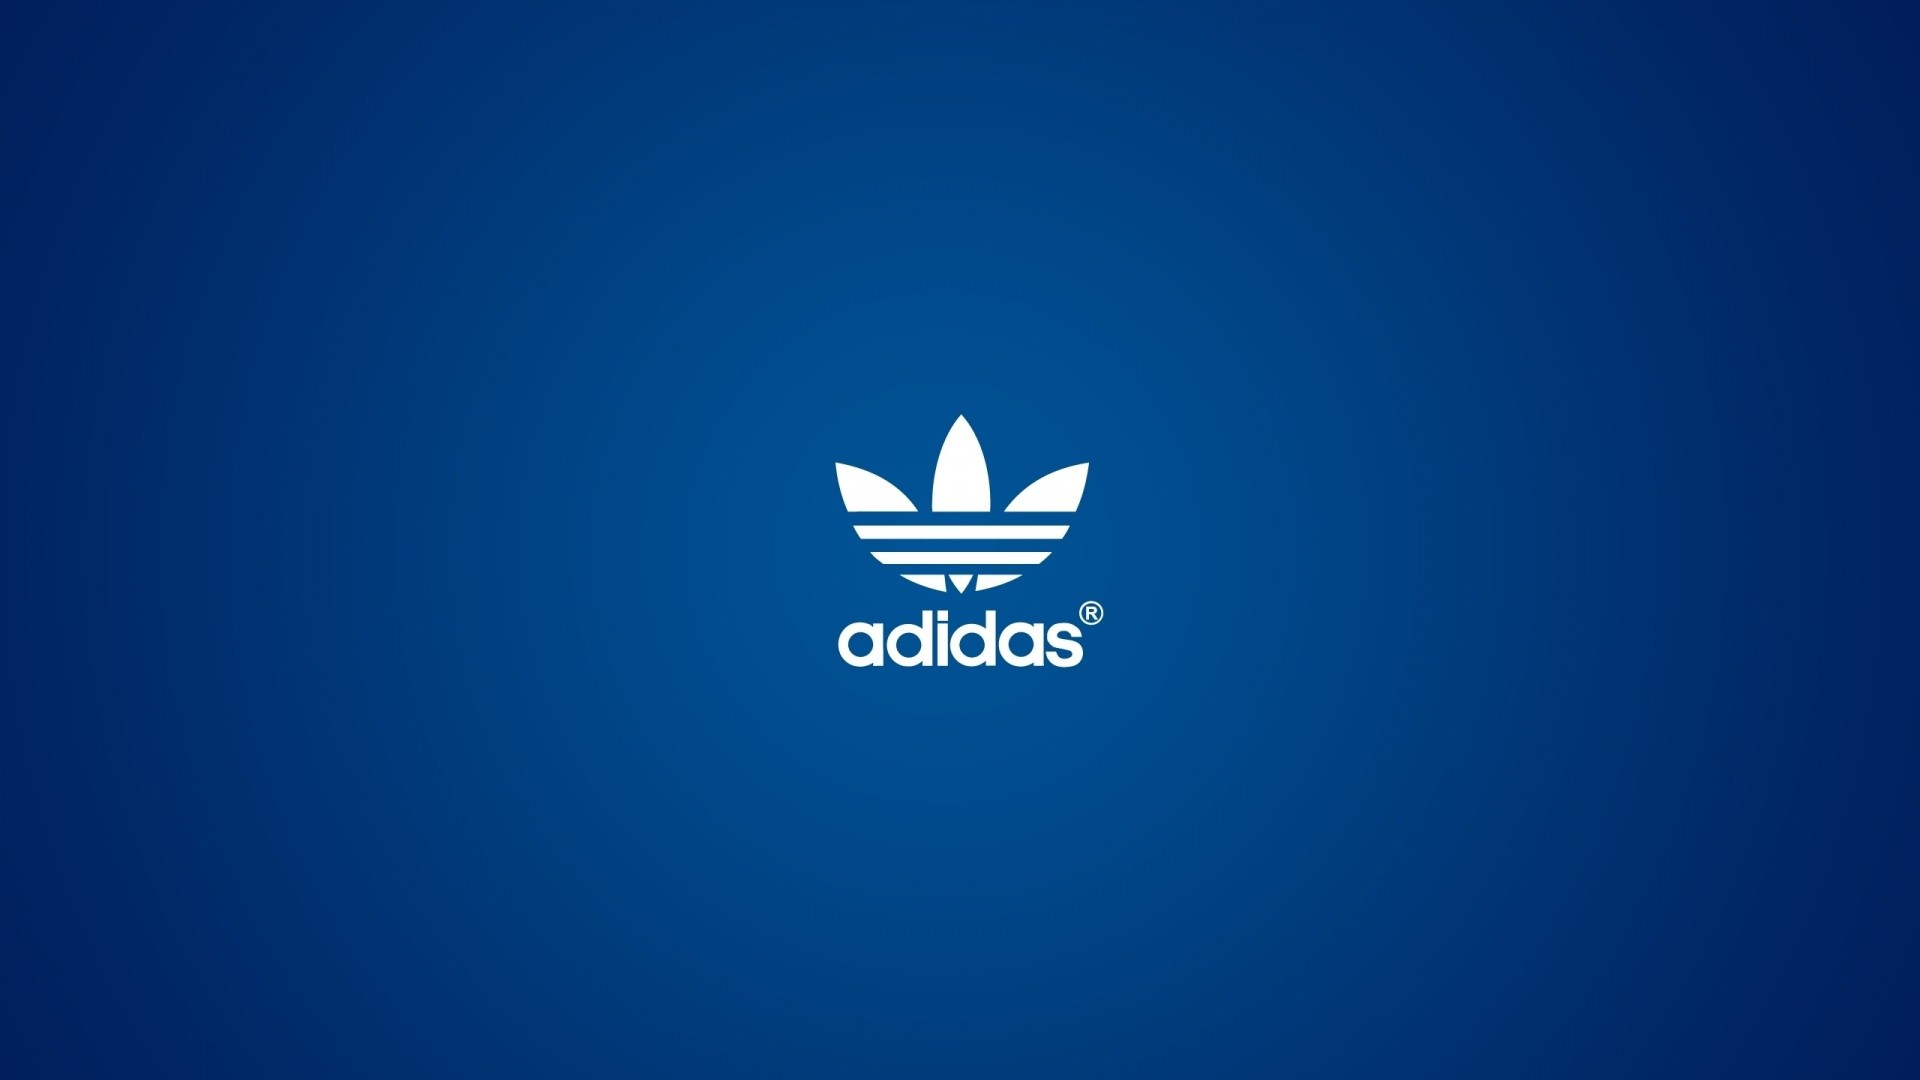 Adidas Blue Logo HD Wallpaper 1080p